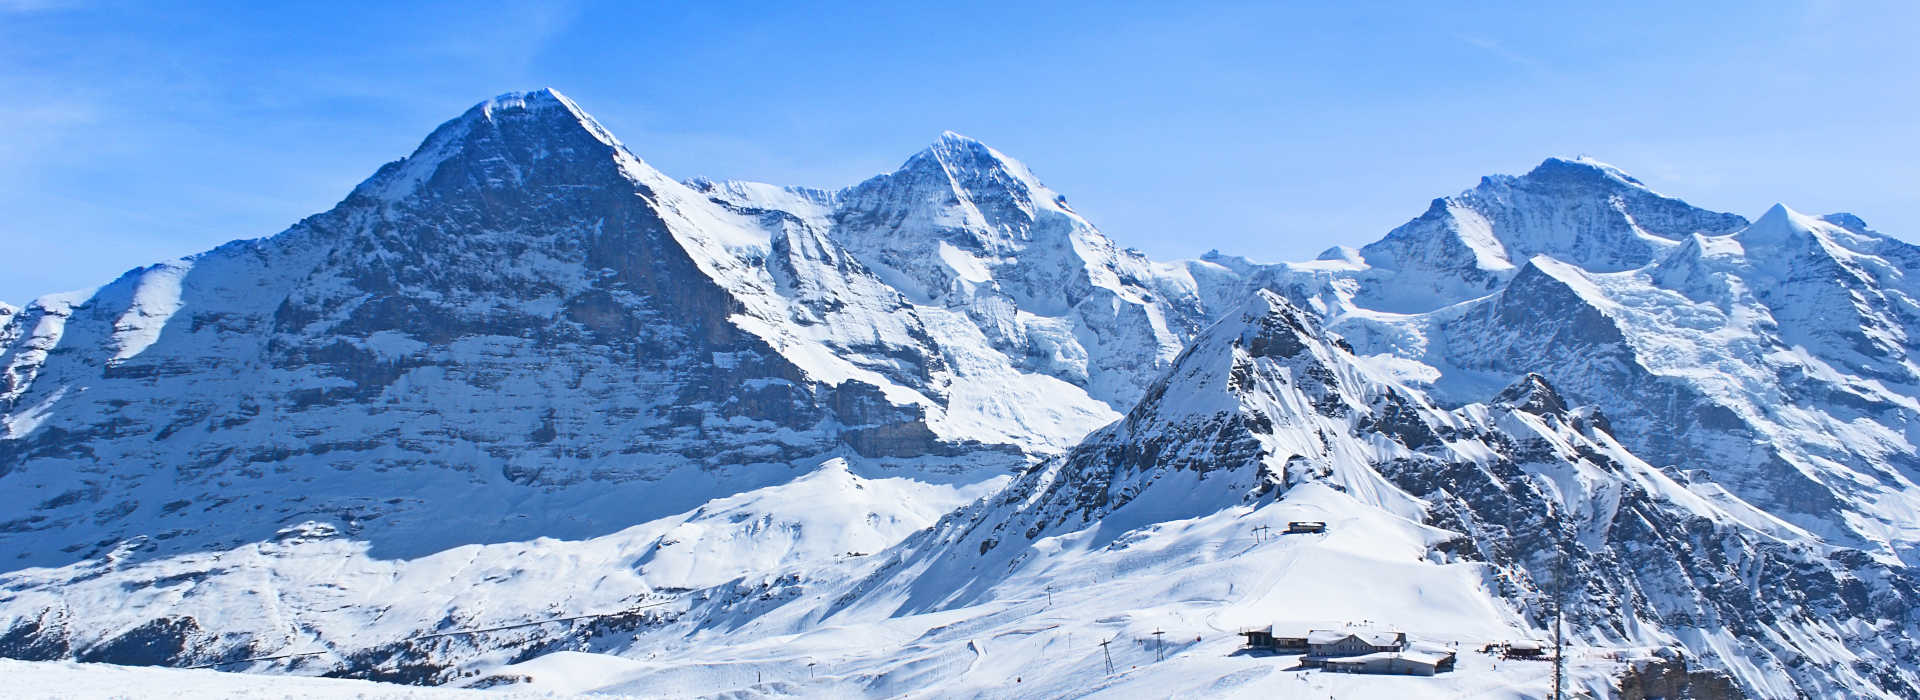 The Swiss winter resort boasts perfect ski tracks and nice views on the snowbound Alps, Grindelwald.